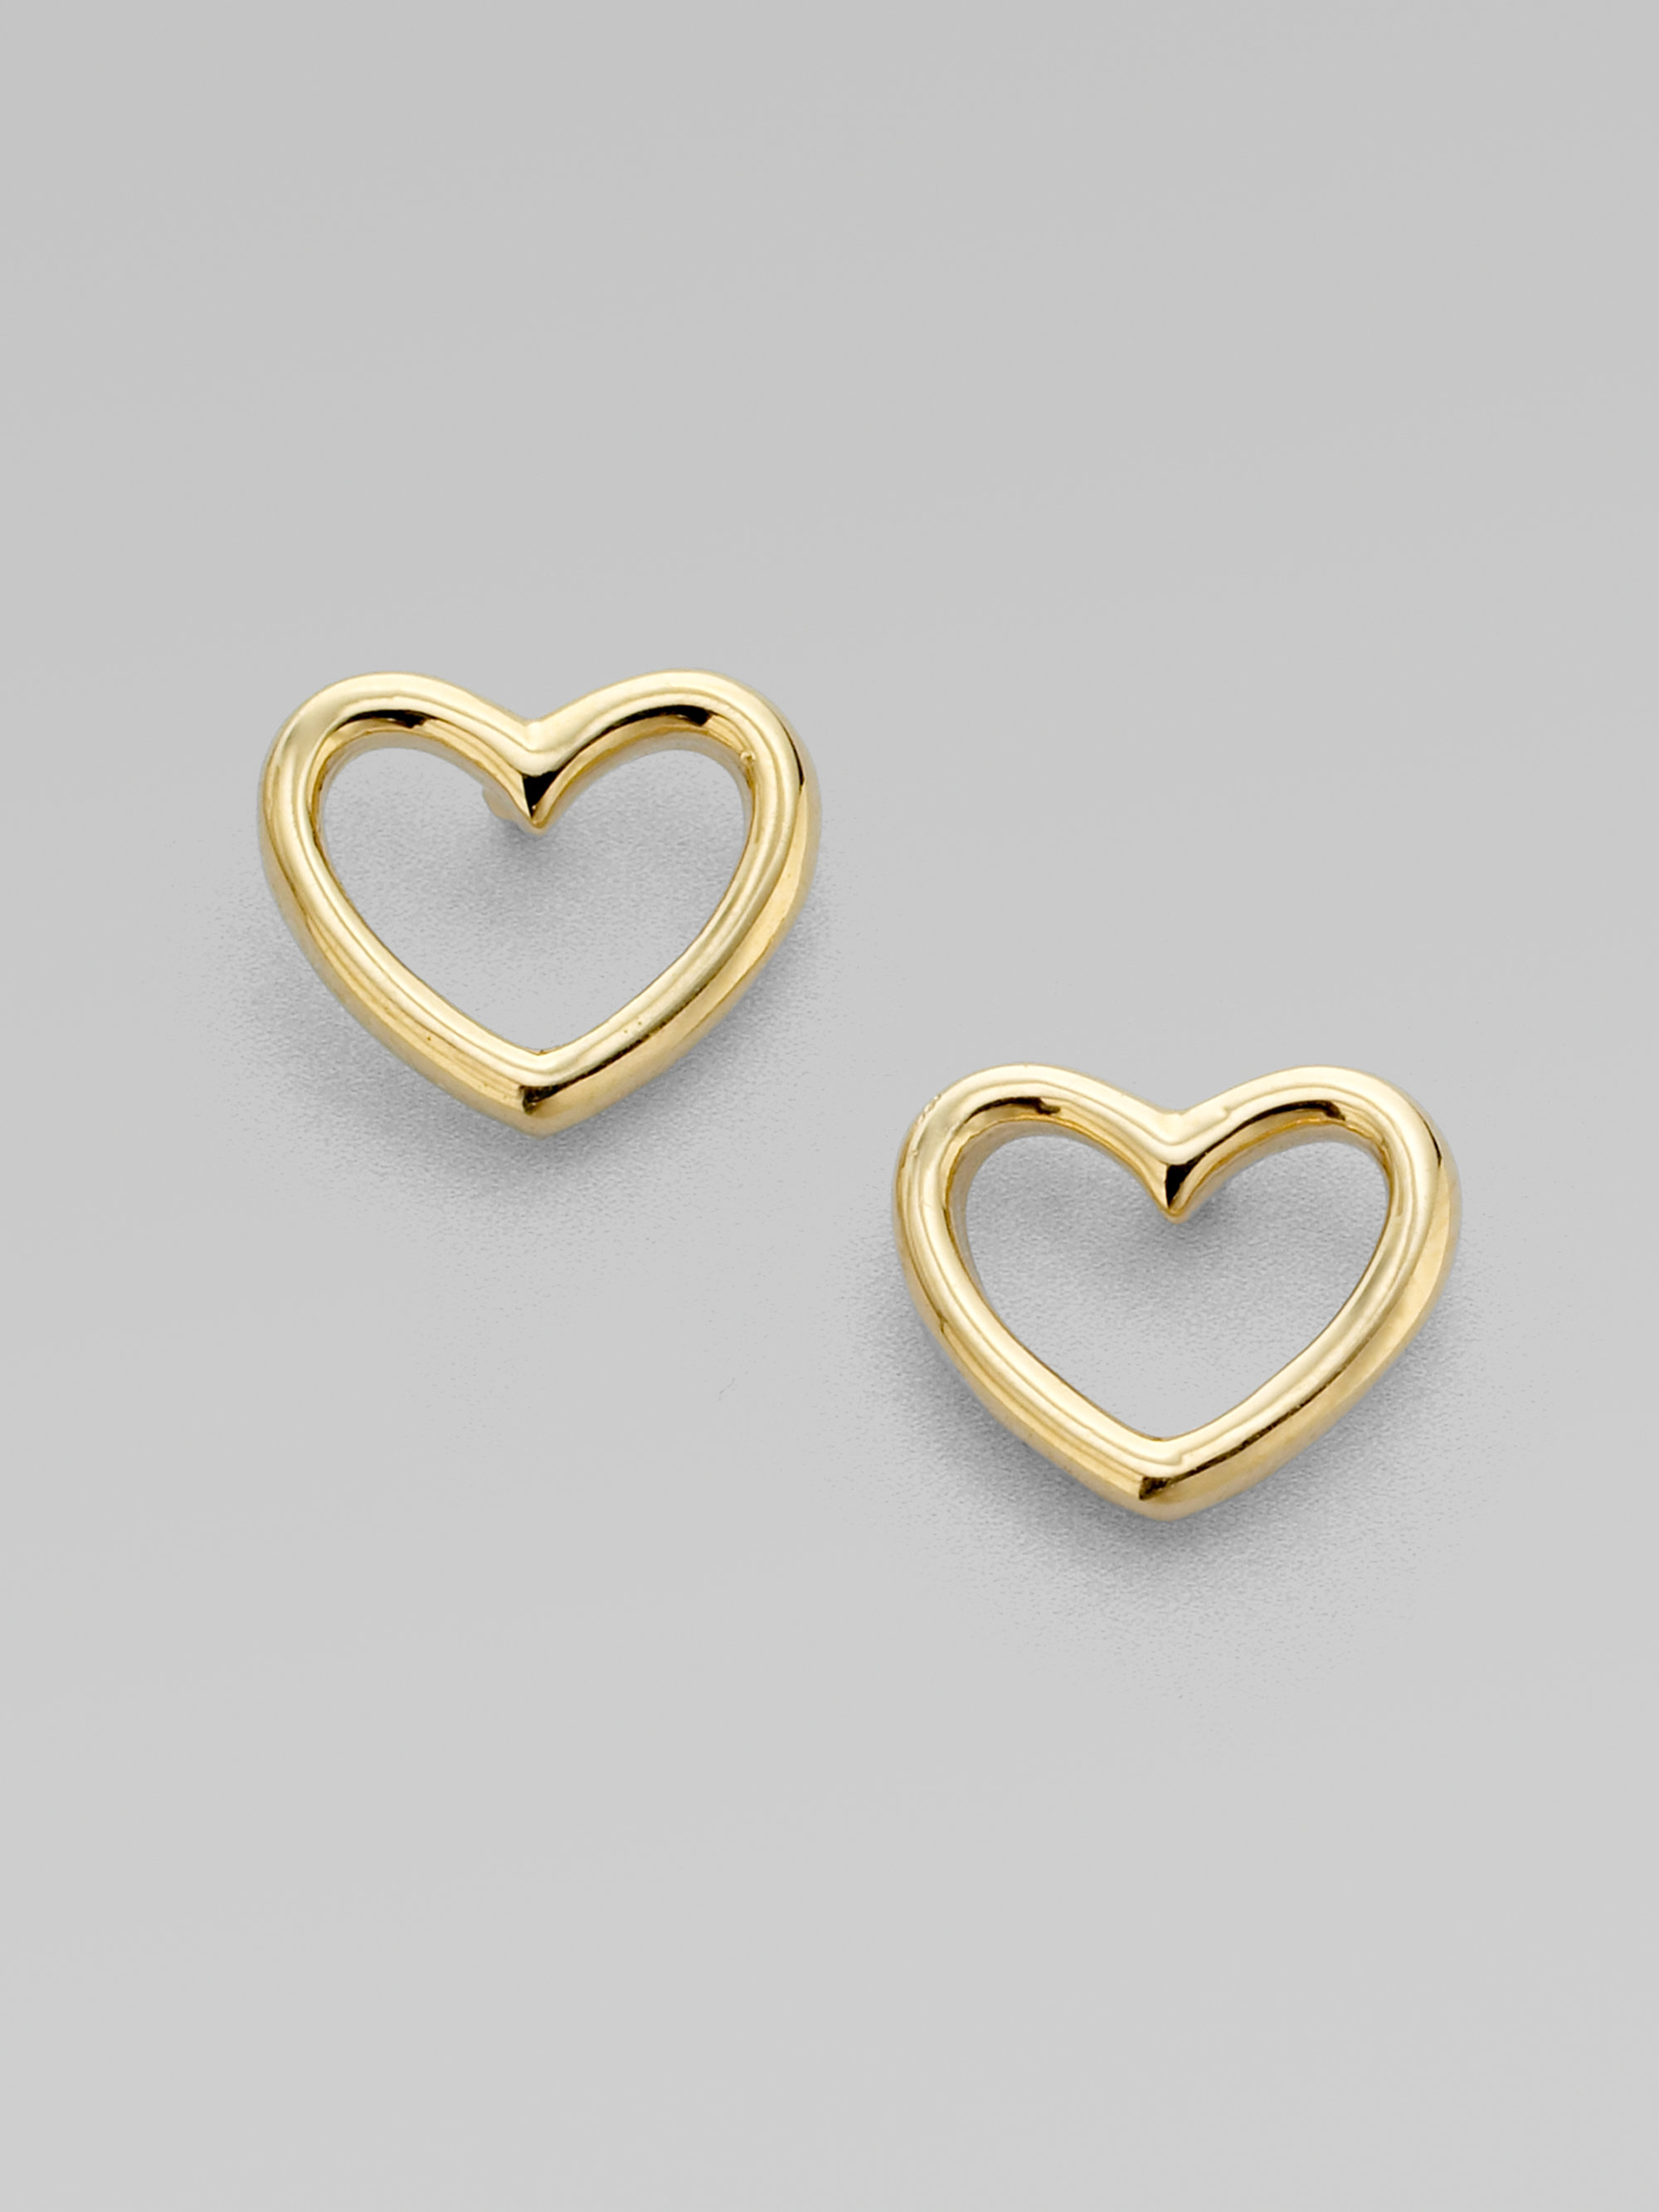 jewelry metallic lyst in by earrings product marc shaped jacobs heart gold gallery